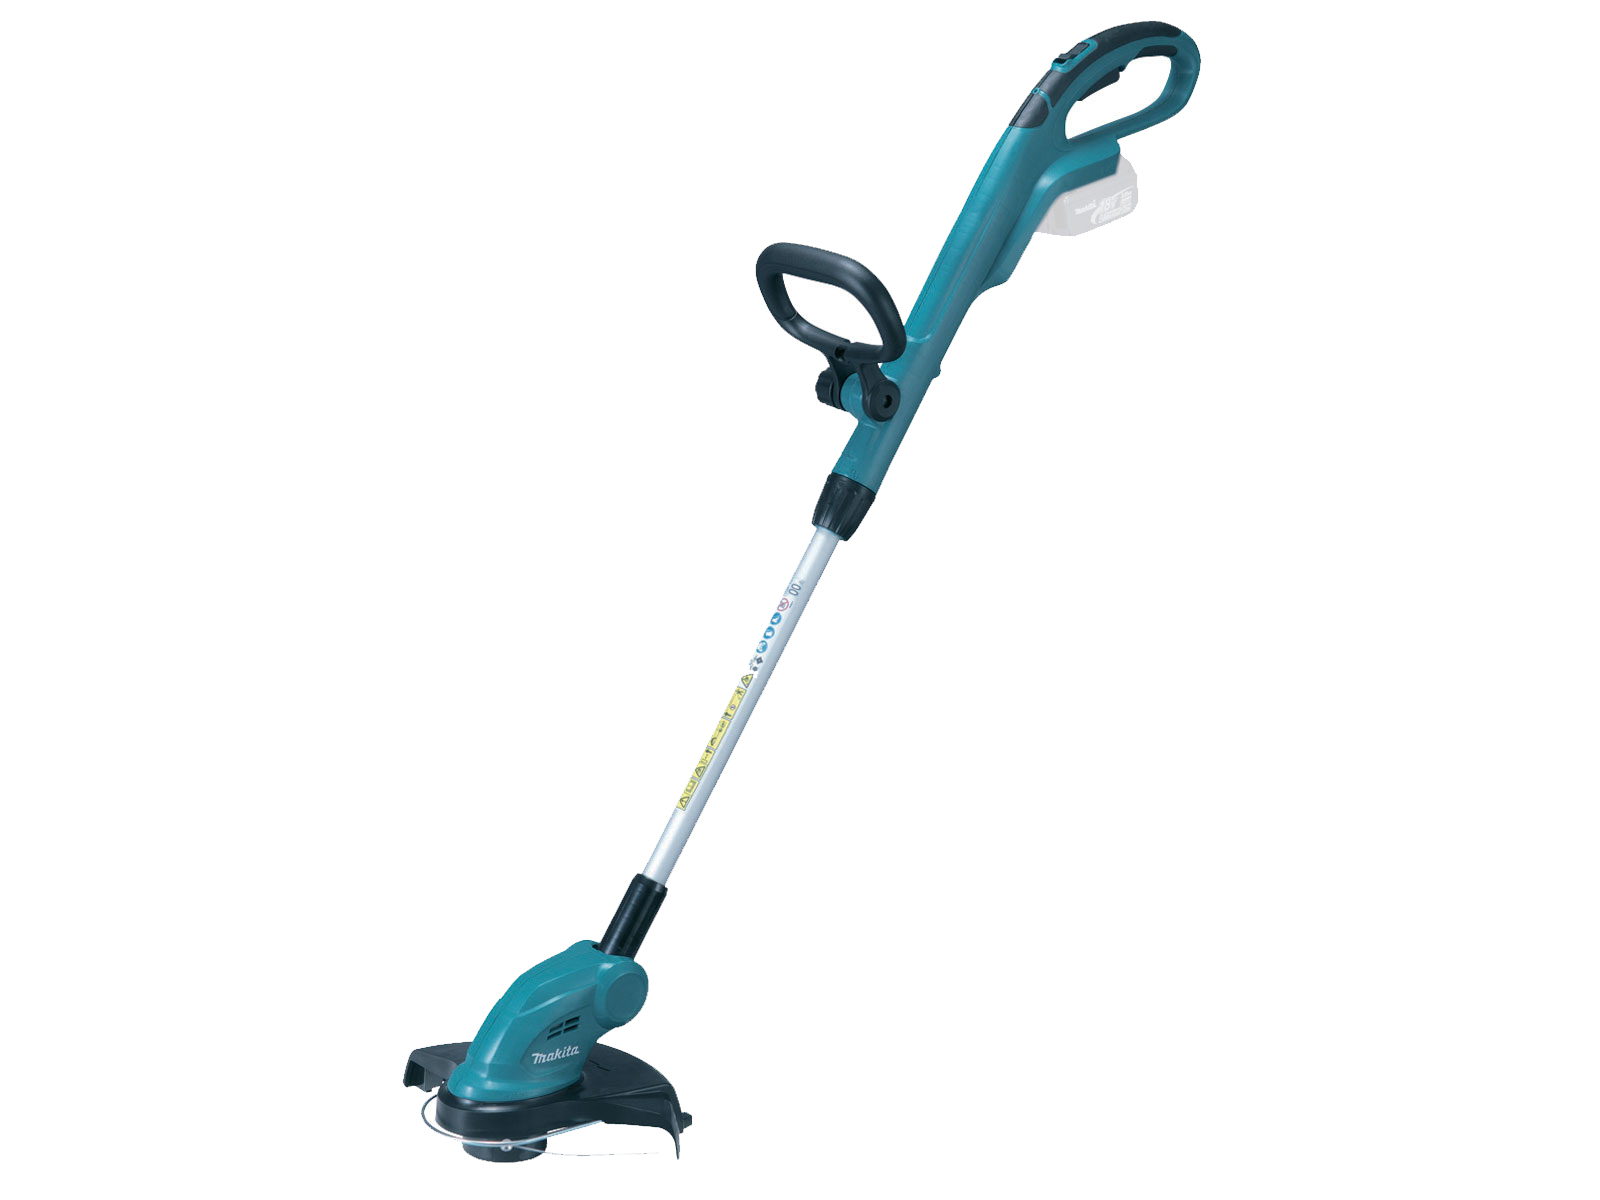 MAKITA 18V LXT LINE TRIMMER - DUR181Z - BODY ONLY